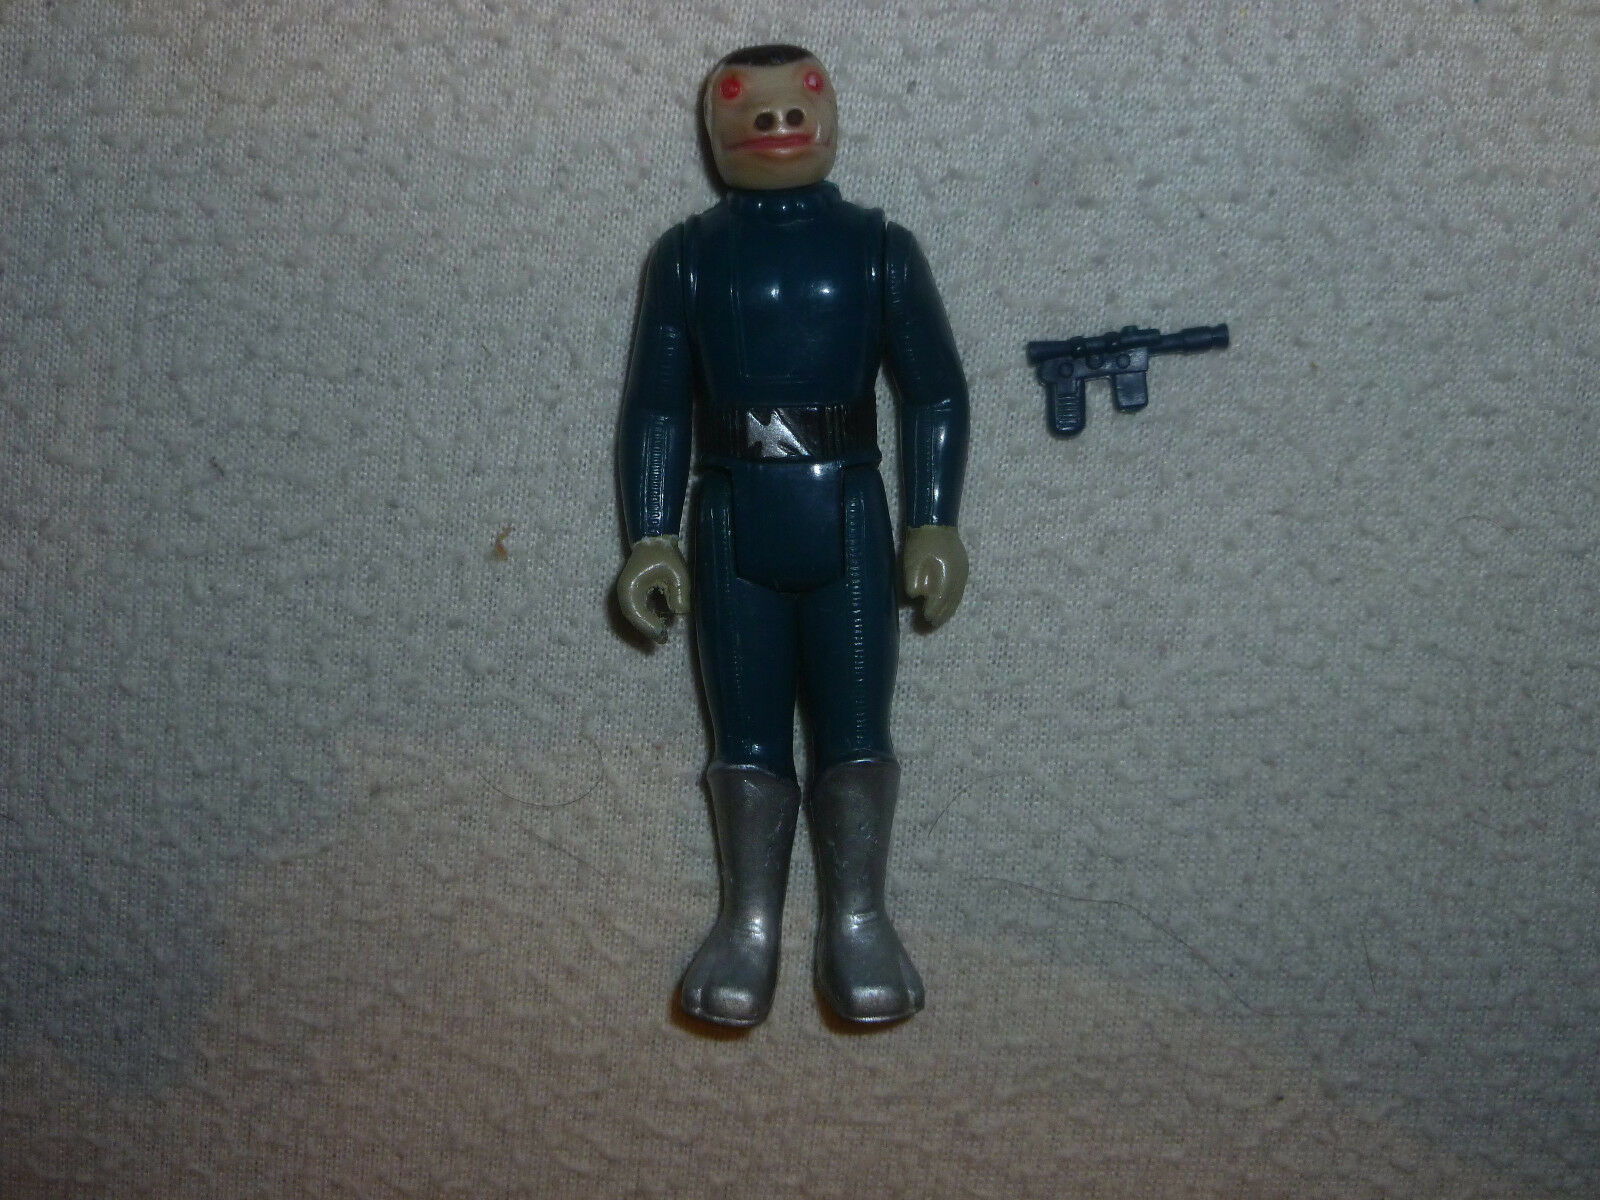 STAR WARS 1978 FIGURE COMPLETE RARE blueE SNAGGLETOOTH SNAGGLETOOTH SNAGGLETOOTH SEARS CANTINA NO DENT POTF d7c833